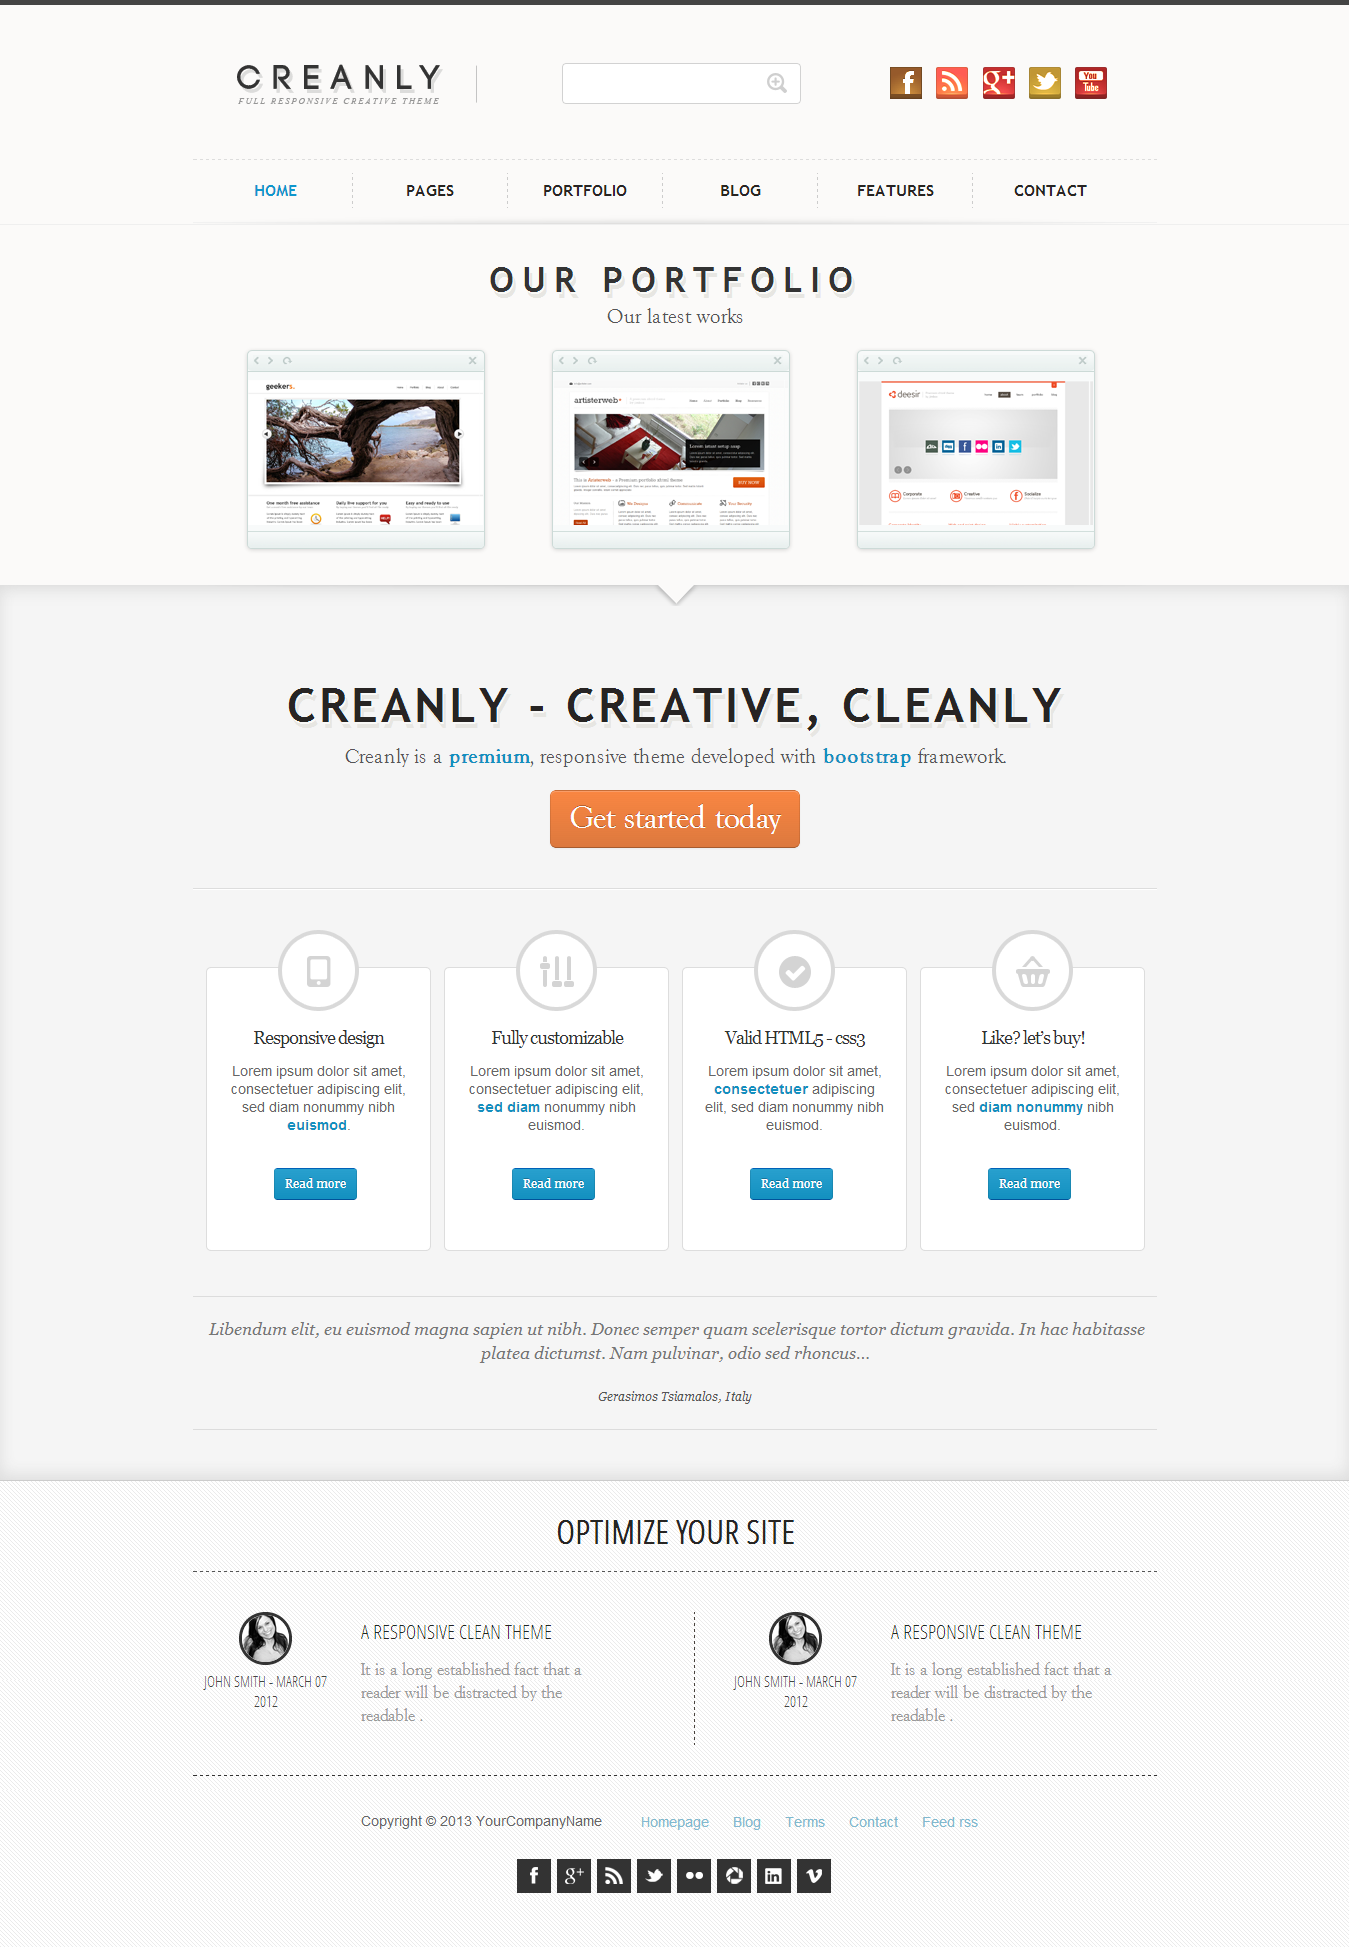 Creanly - Responsive clean theme design - This is the collective design of that theme reprising the intere layout homepage